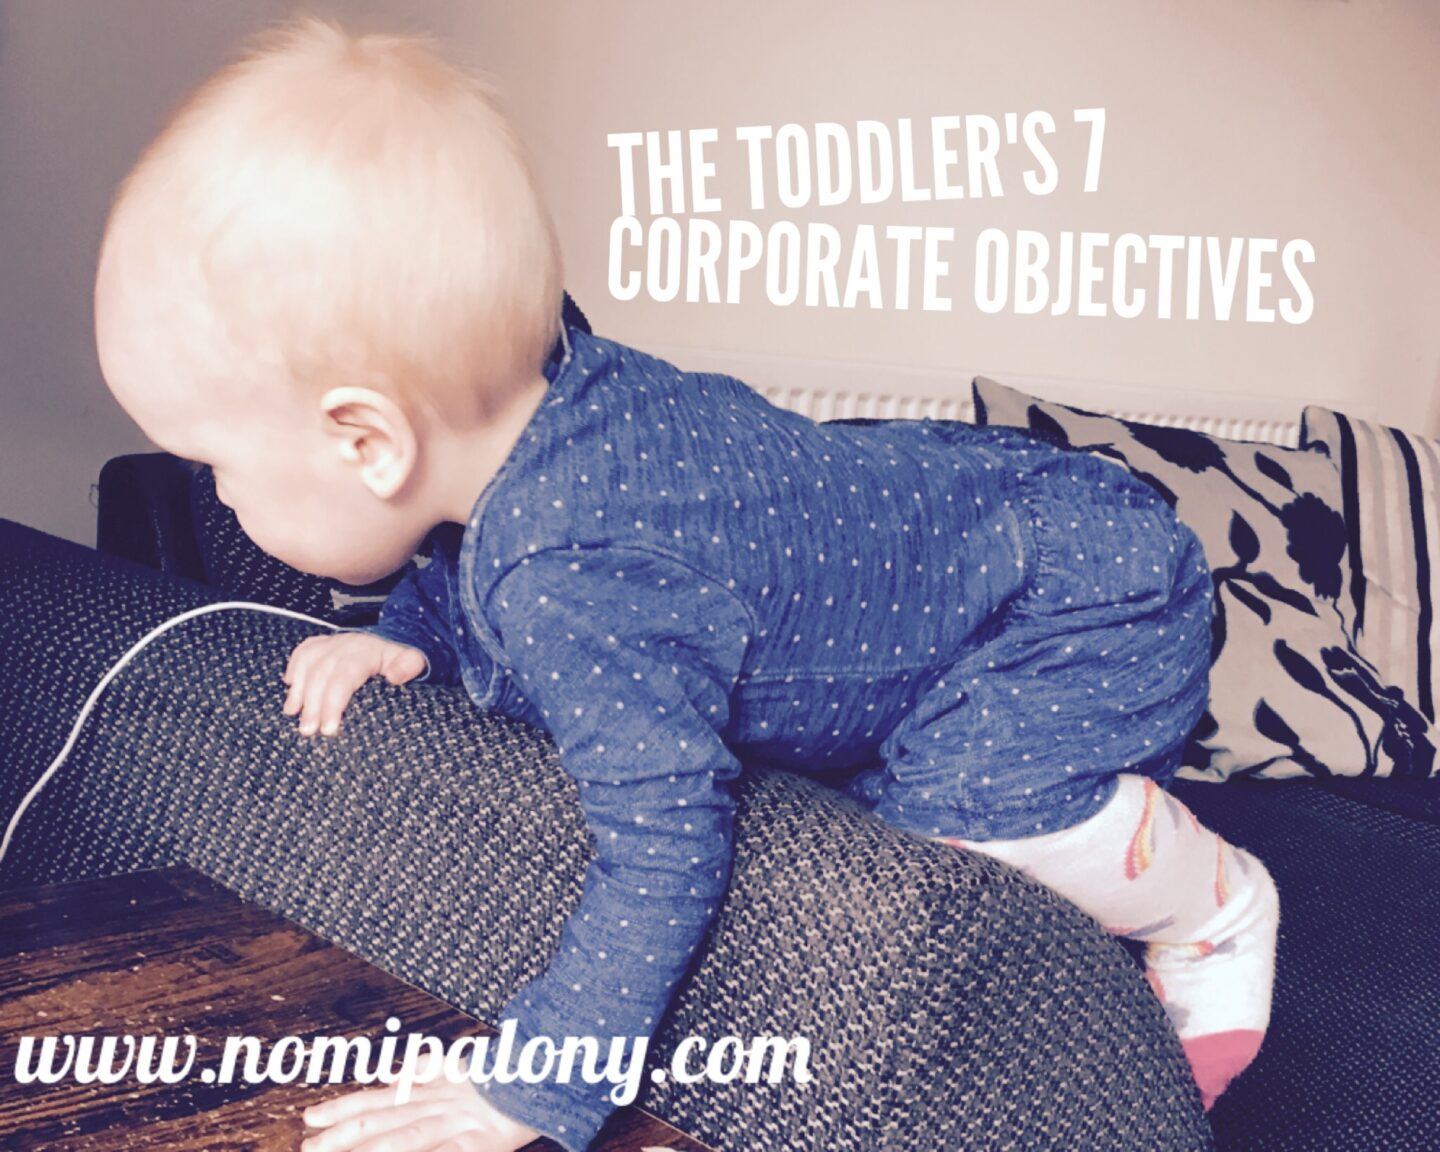 The toddler's 7 corporate objectives